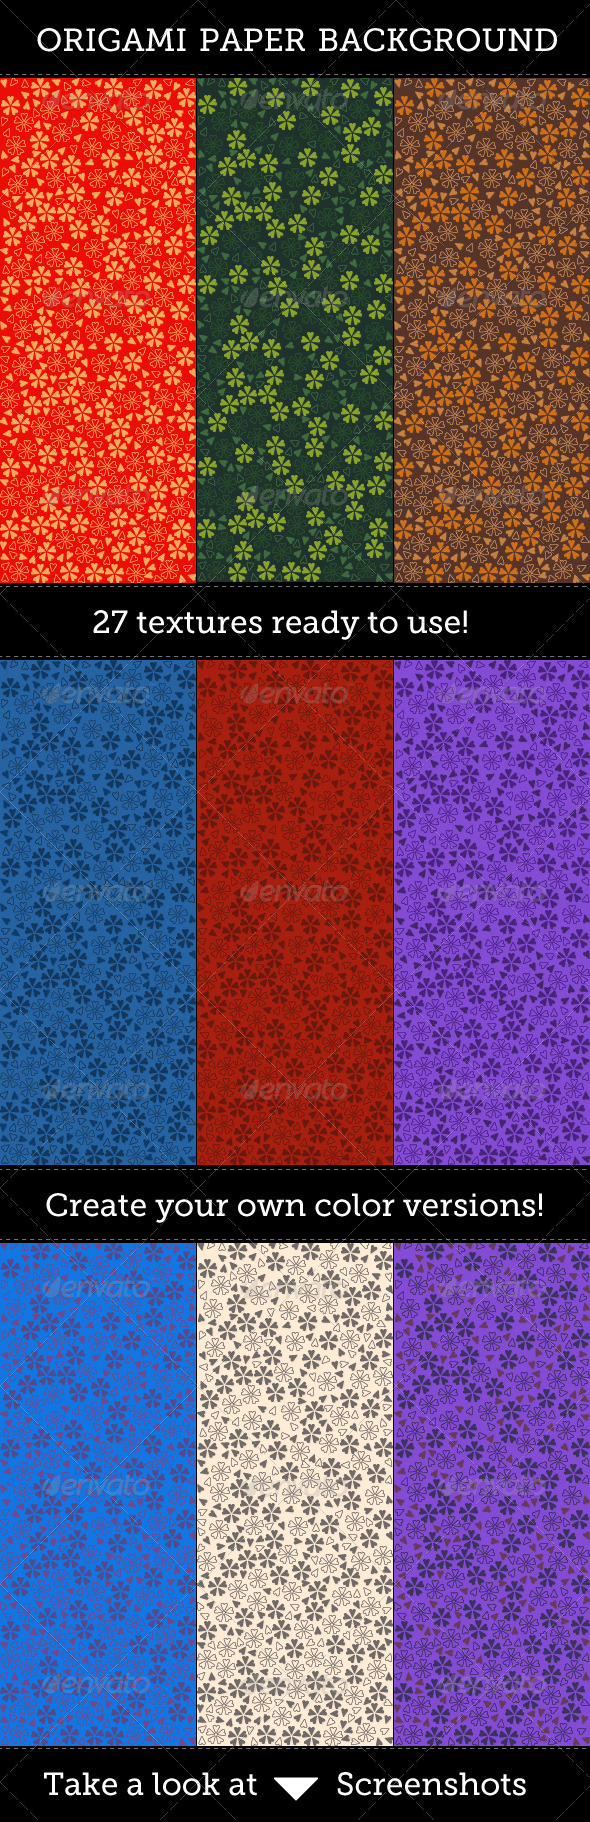 Origami Paper Backgrounds